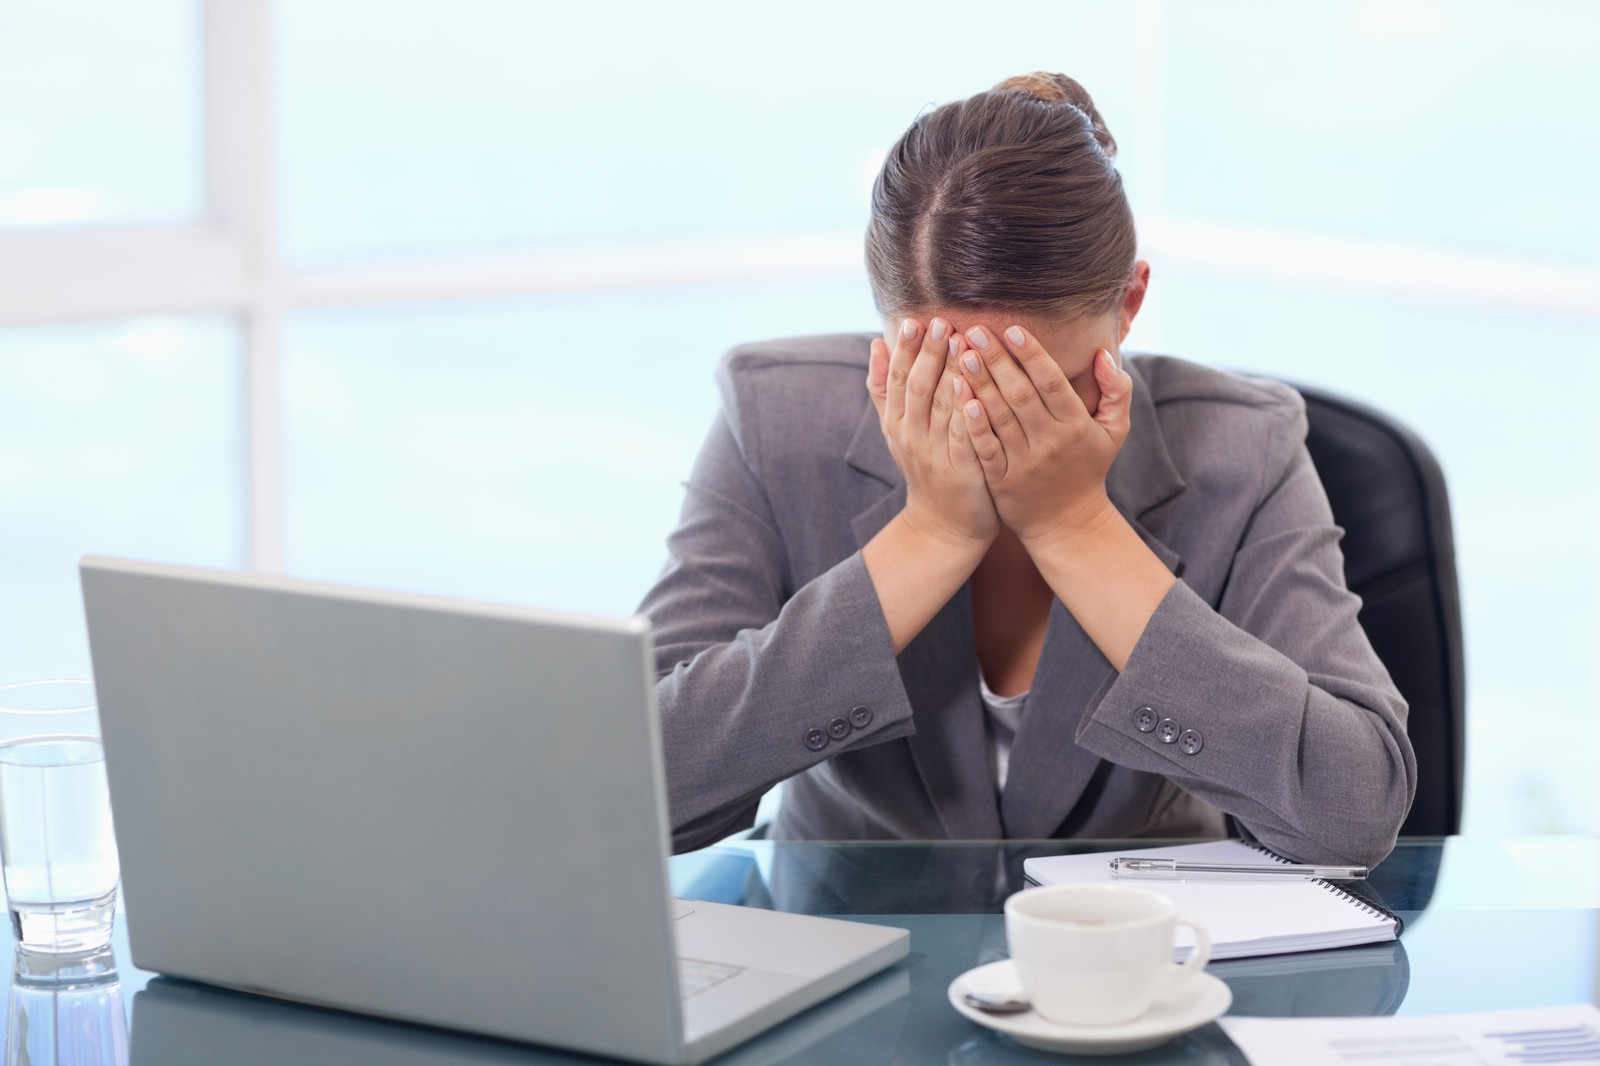 Crying At Work: How To Deal With It